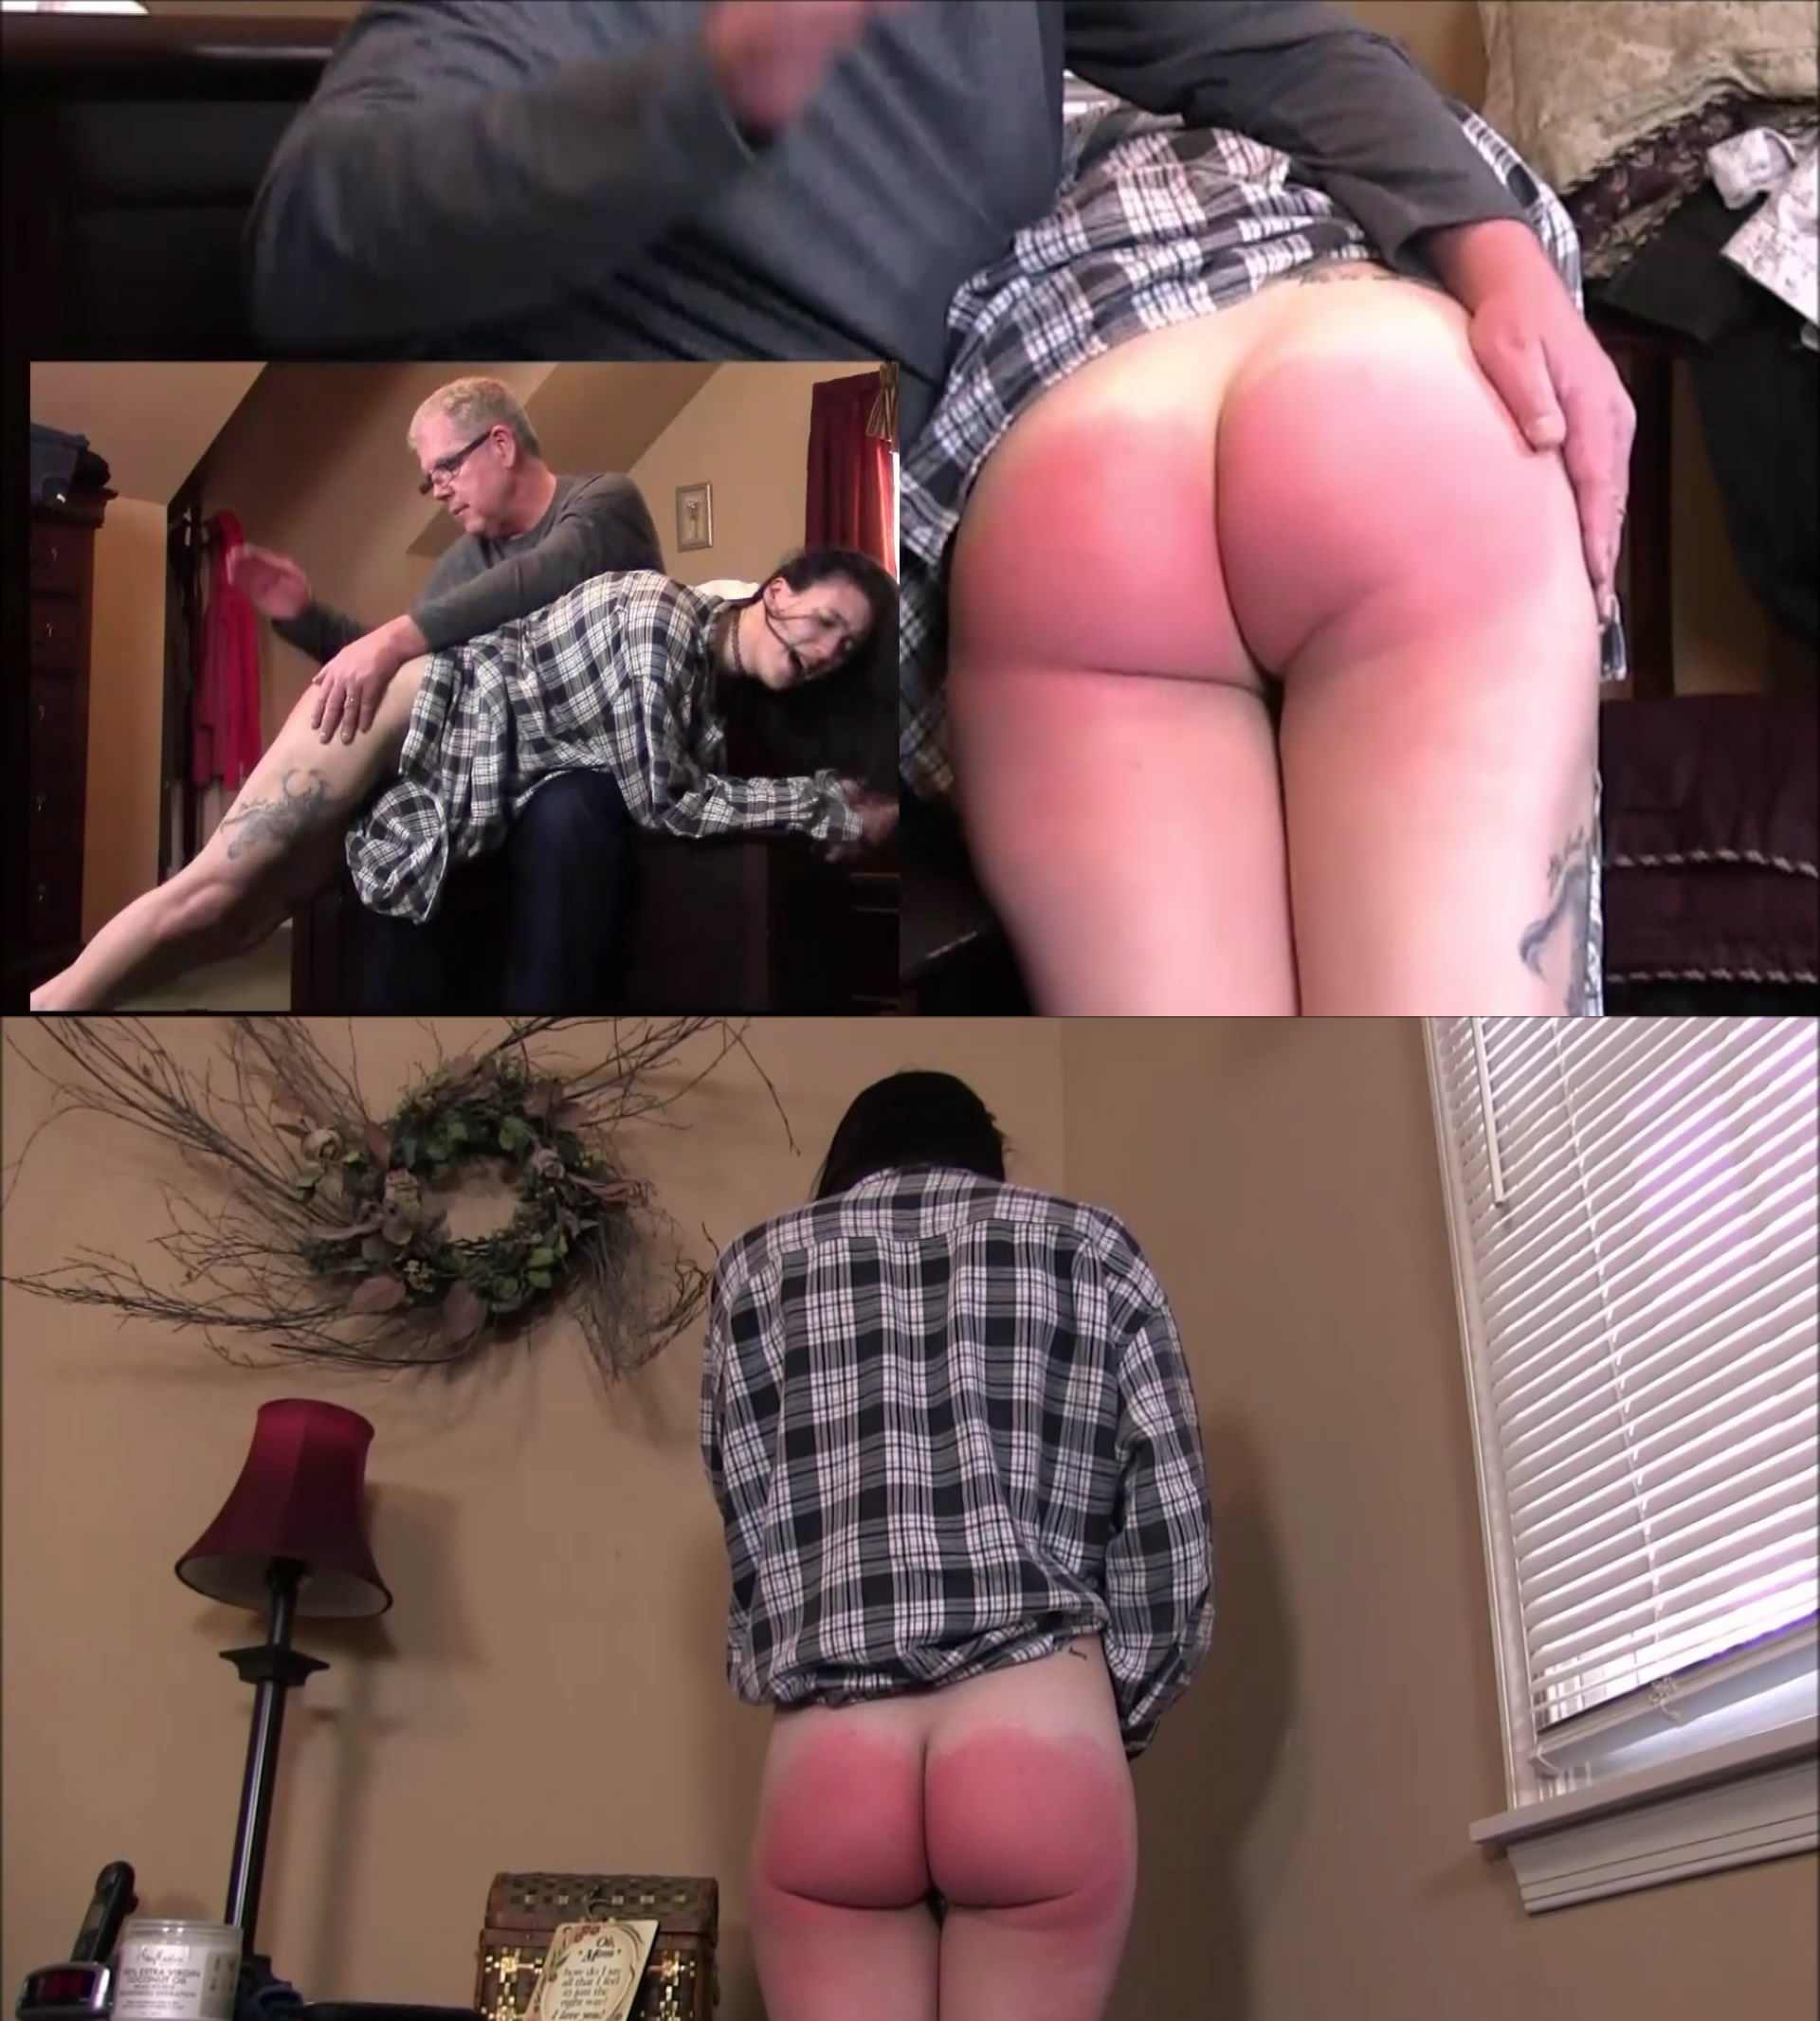 Punished Brats – MP4/Full HD – A Spanking Before Bed (Part 2 of 2)